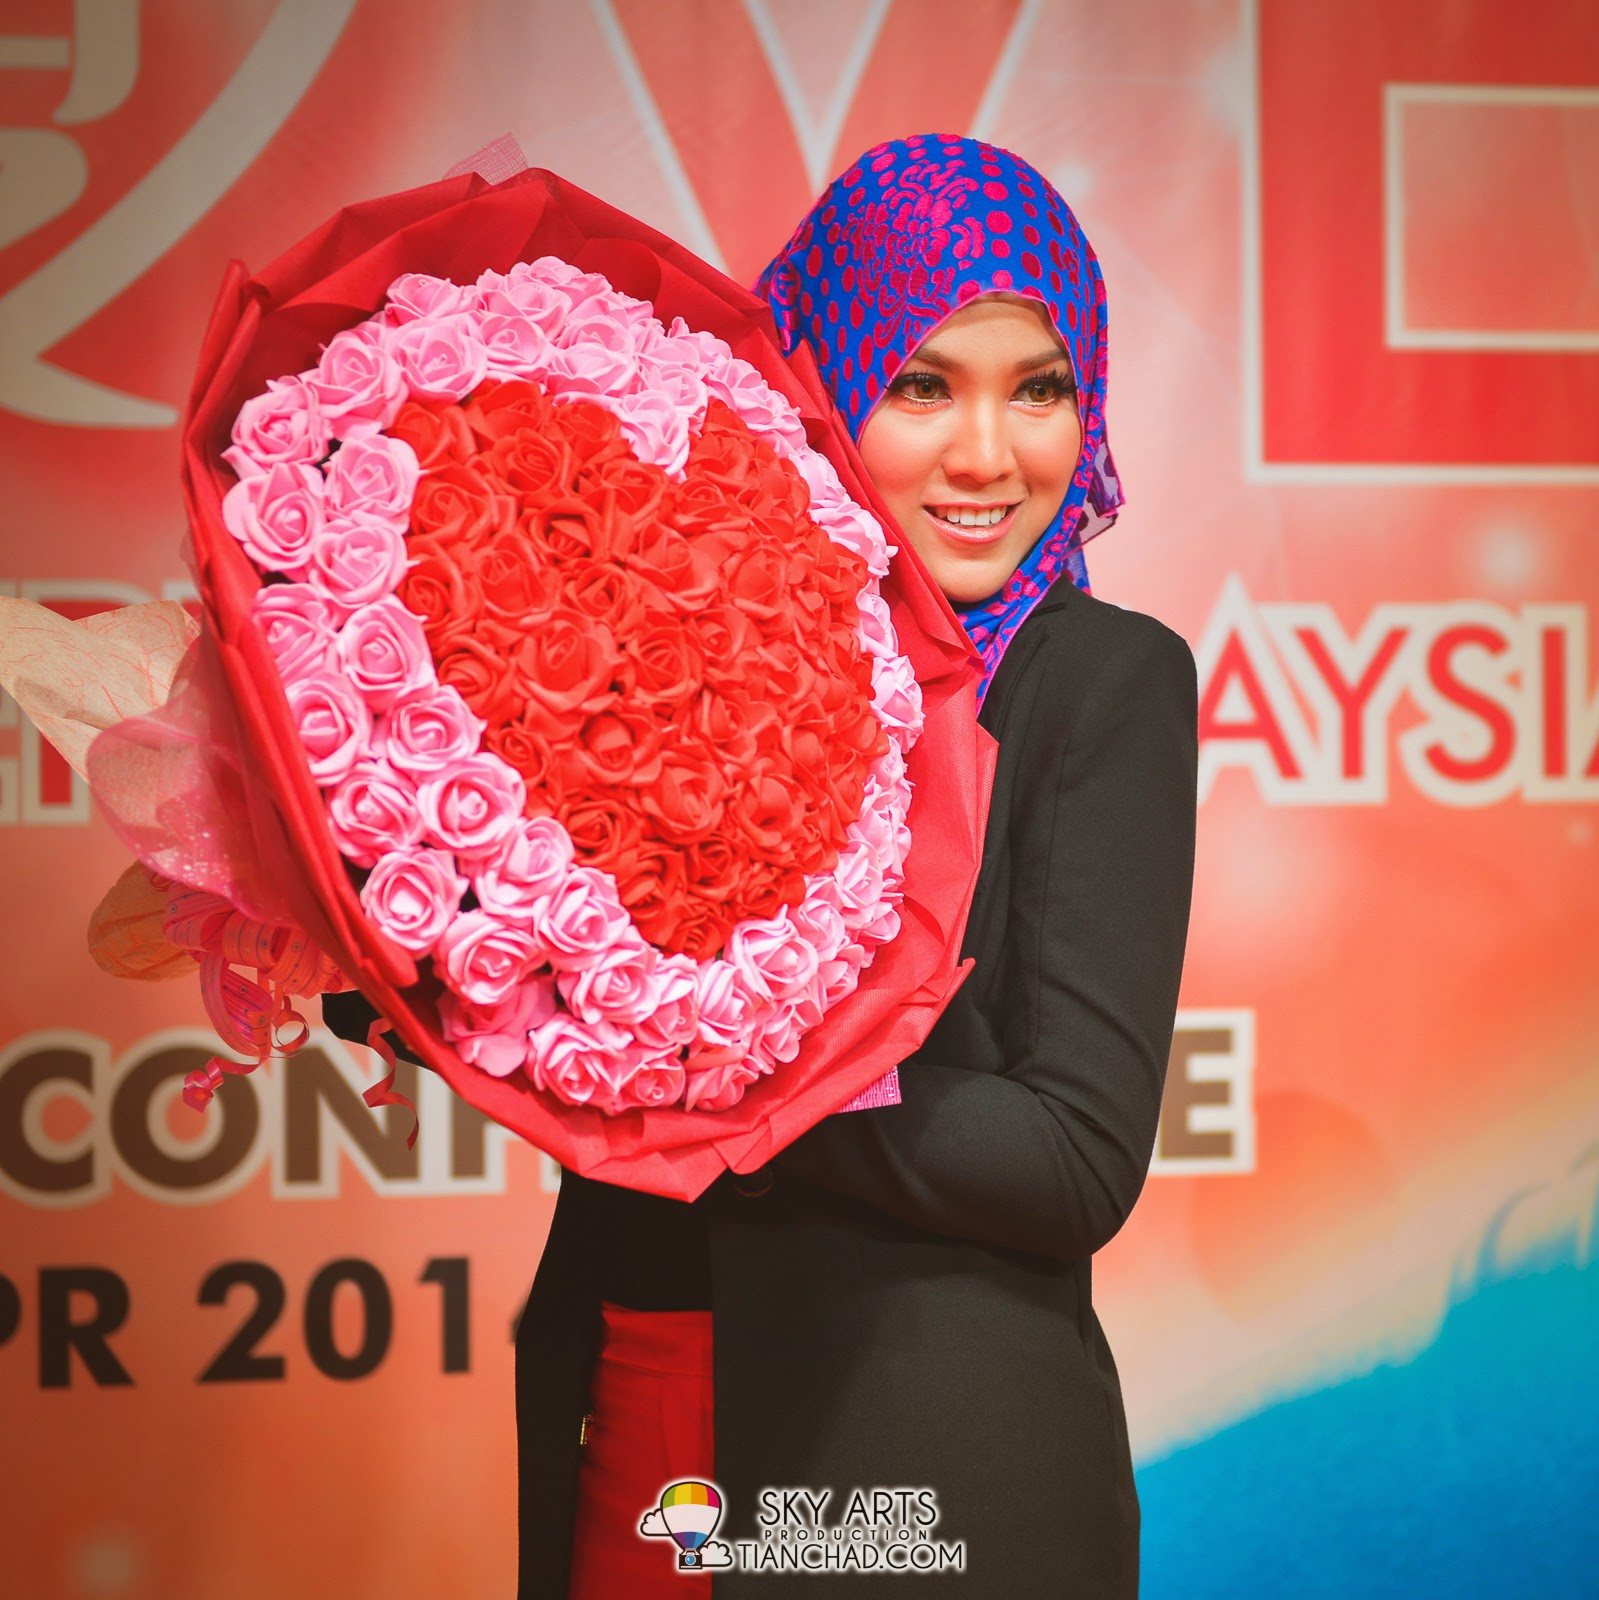 Shila Amzah received a huge bouquet of heart shape flowers